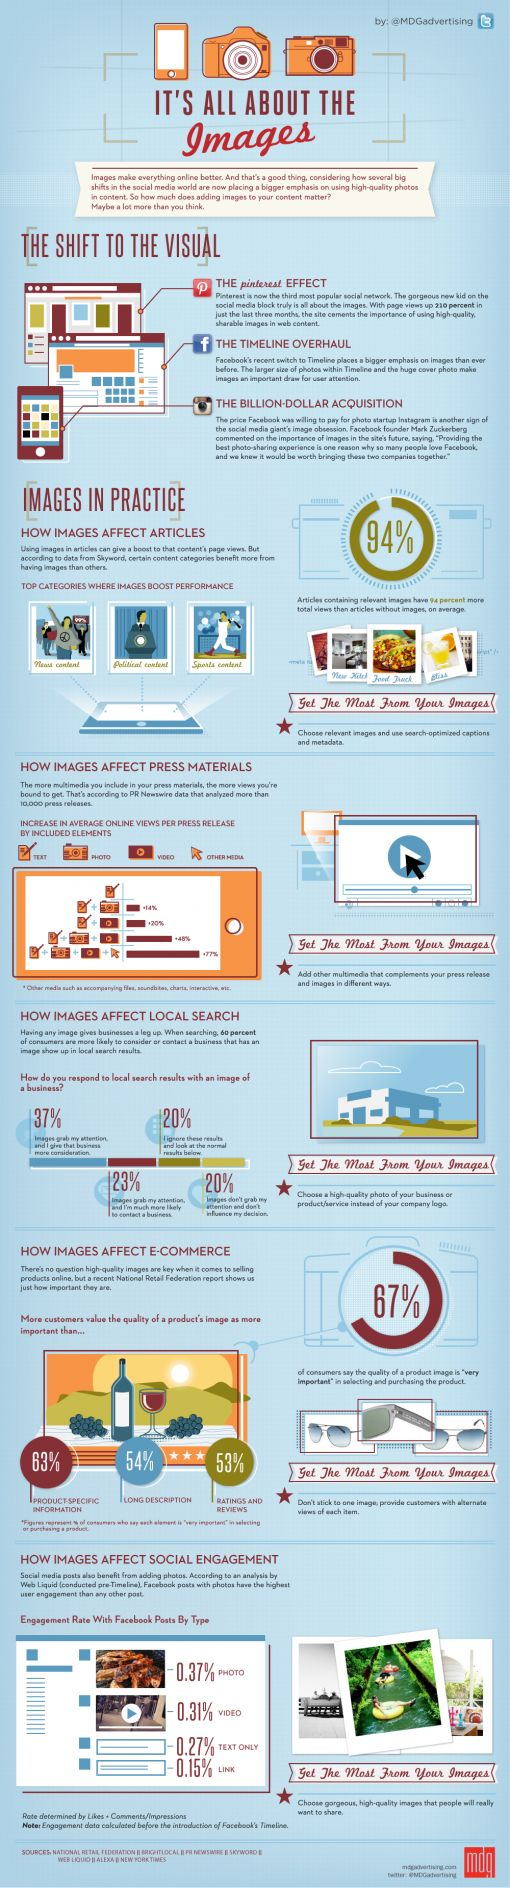 its-all-about-images-infographic_1000